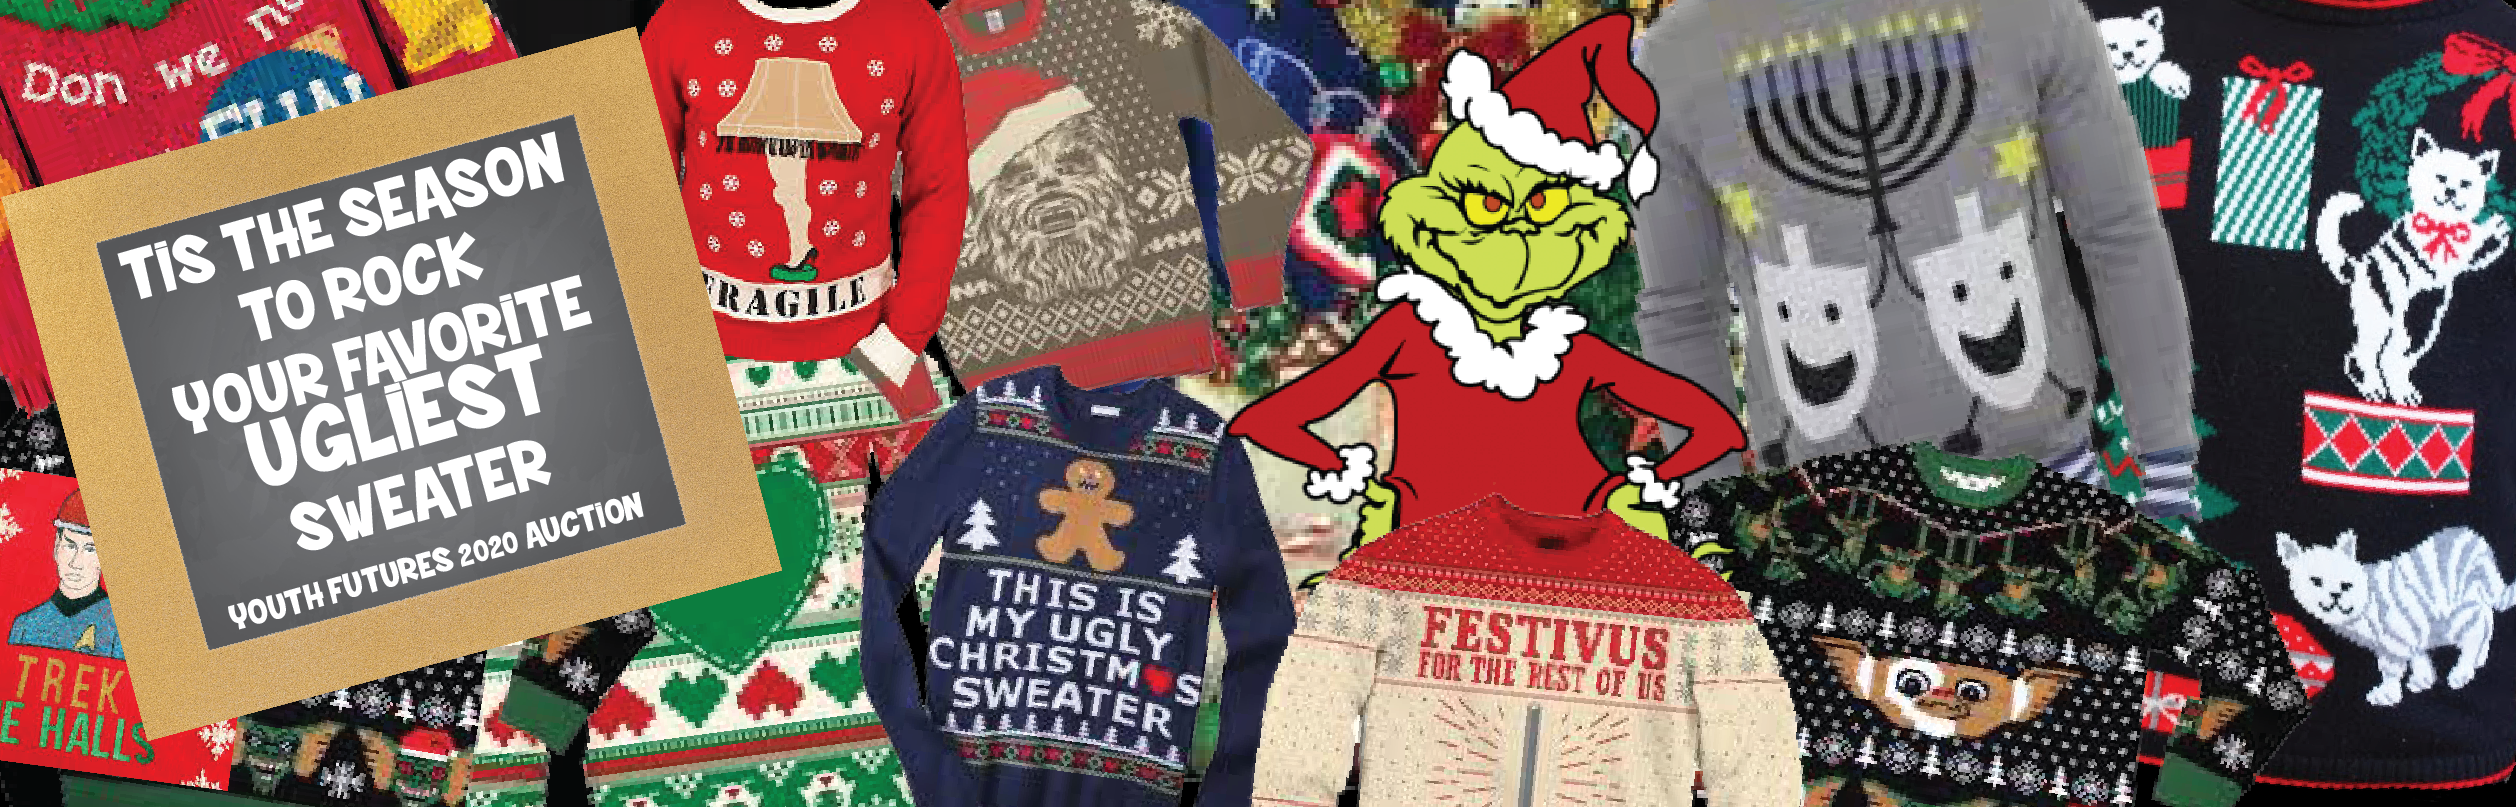 Youth Futures Ugly Sweater Annual Auction